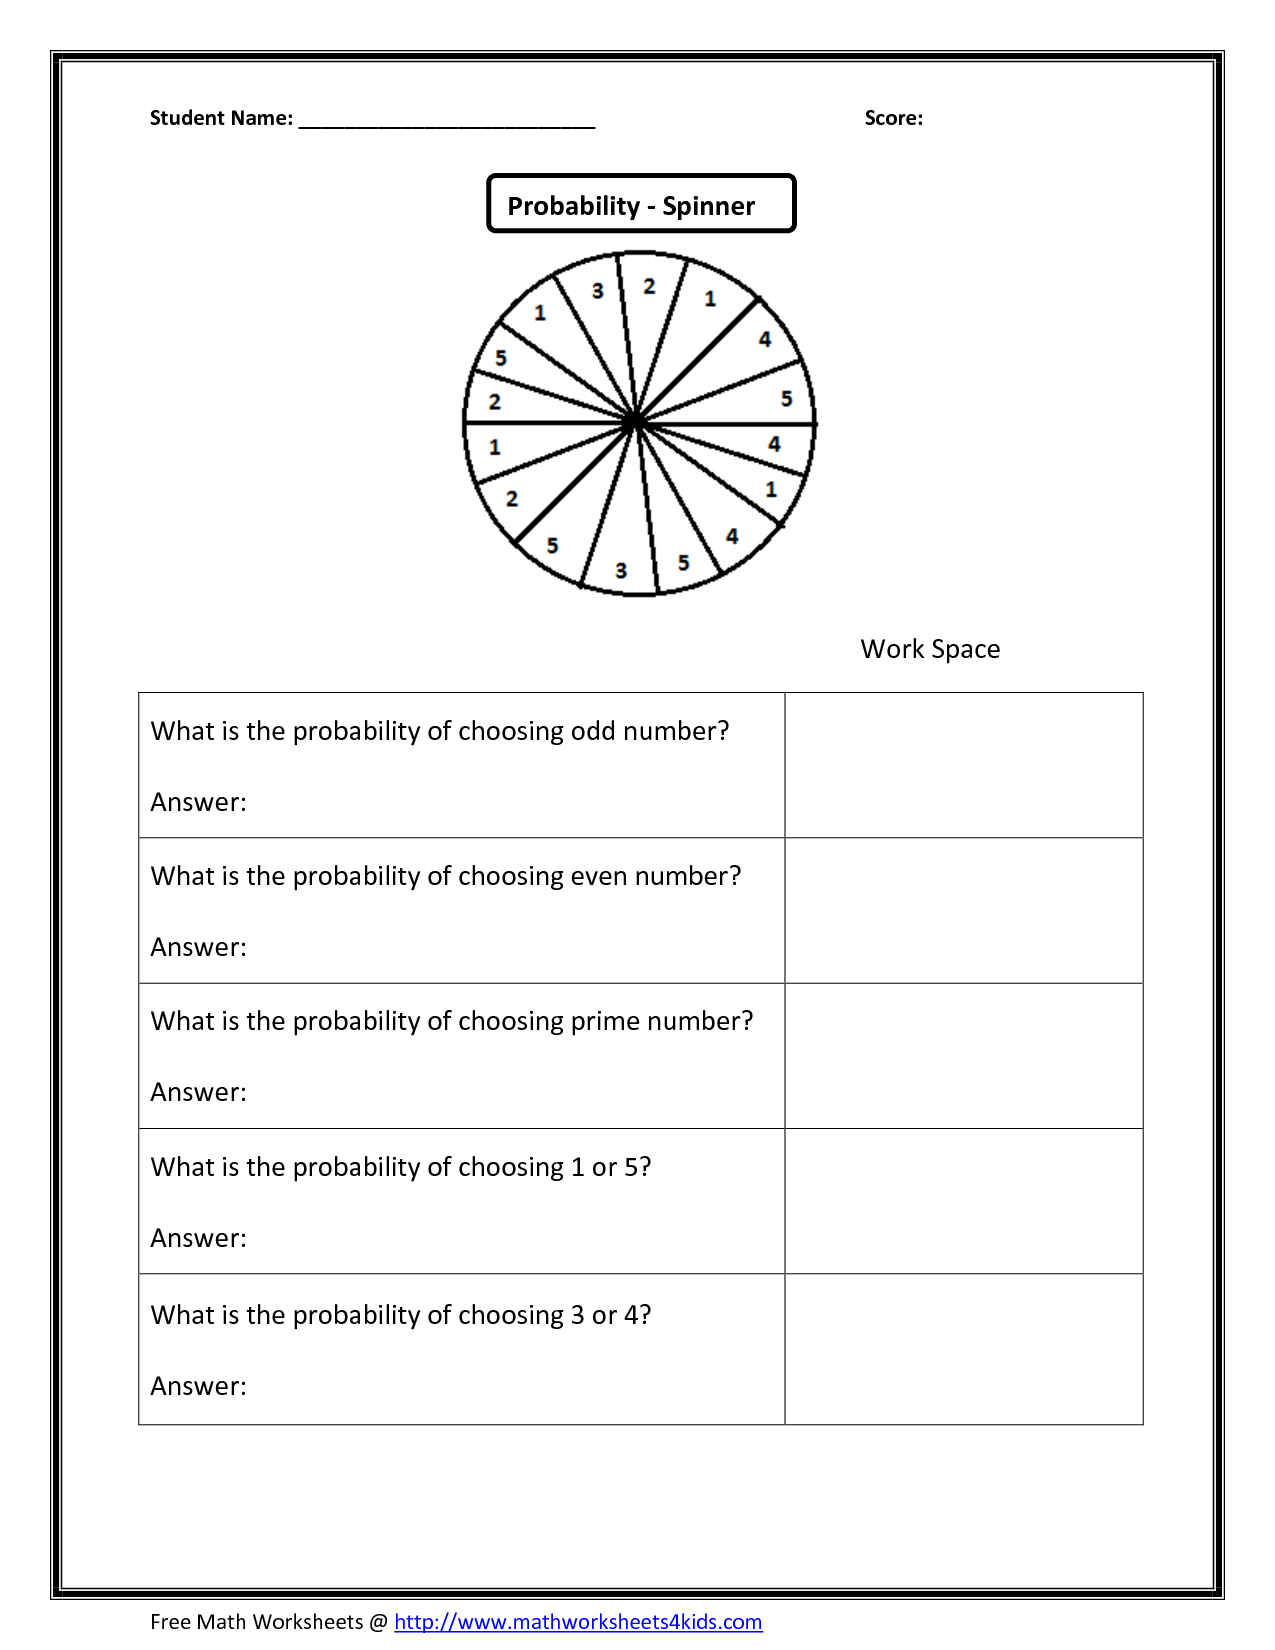 Collection Of Free Math Worksheets Probability Statistics